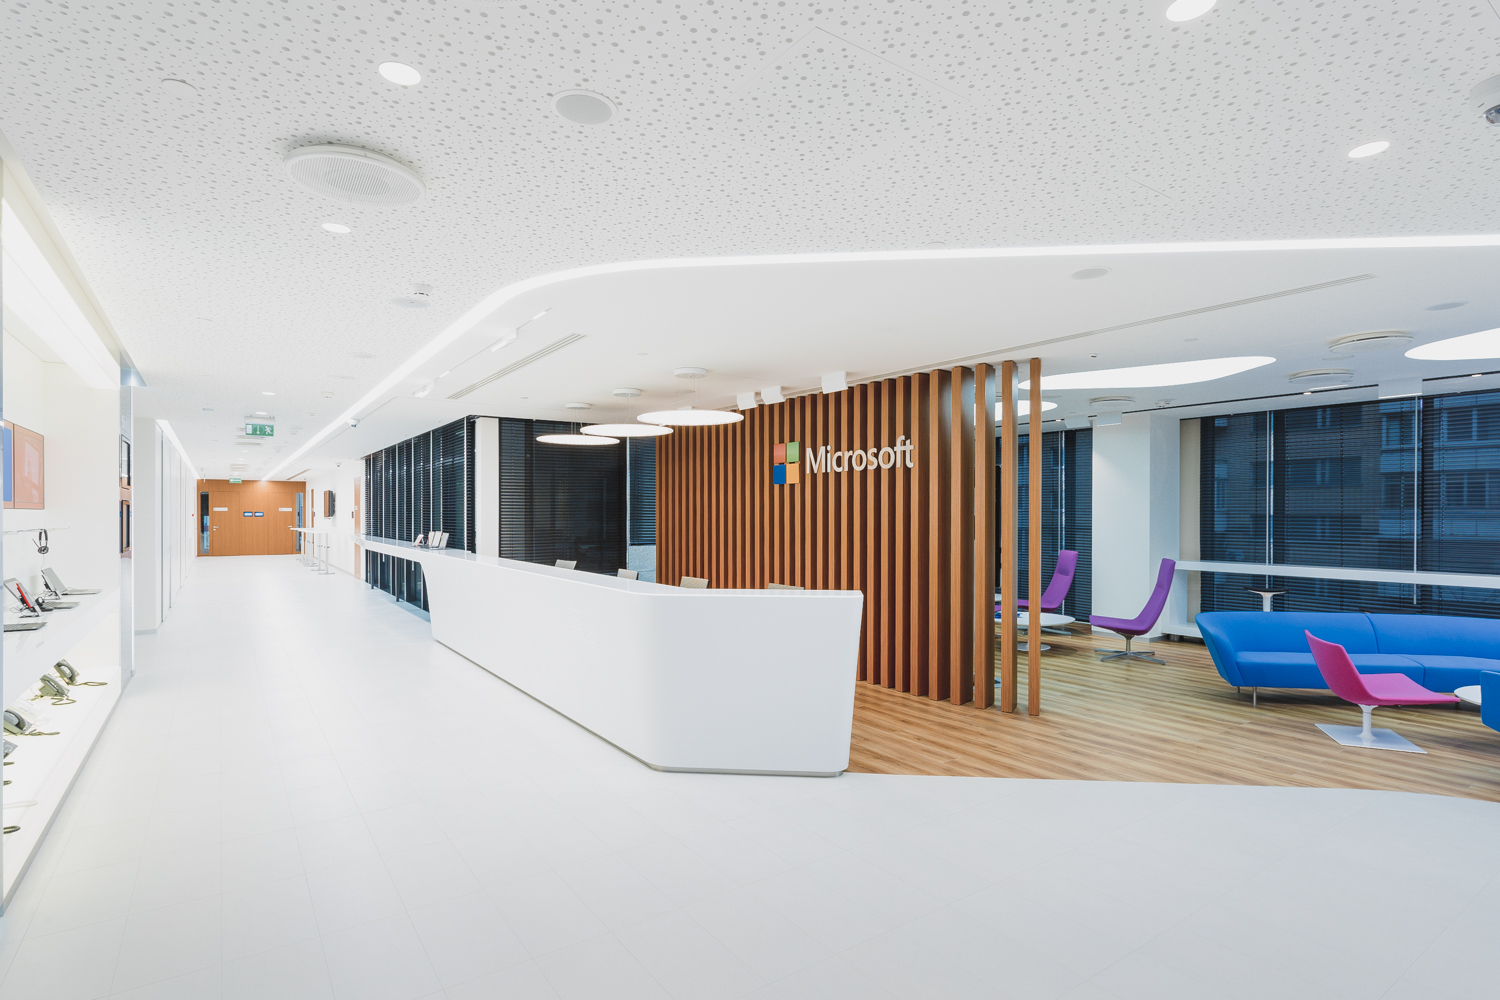 microsoft-technology-center-moscow-2